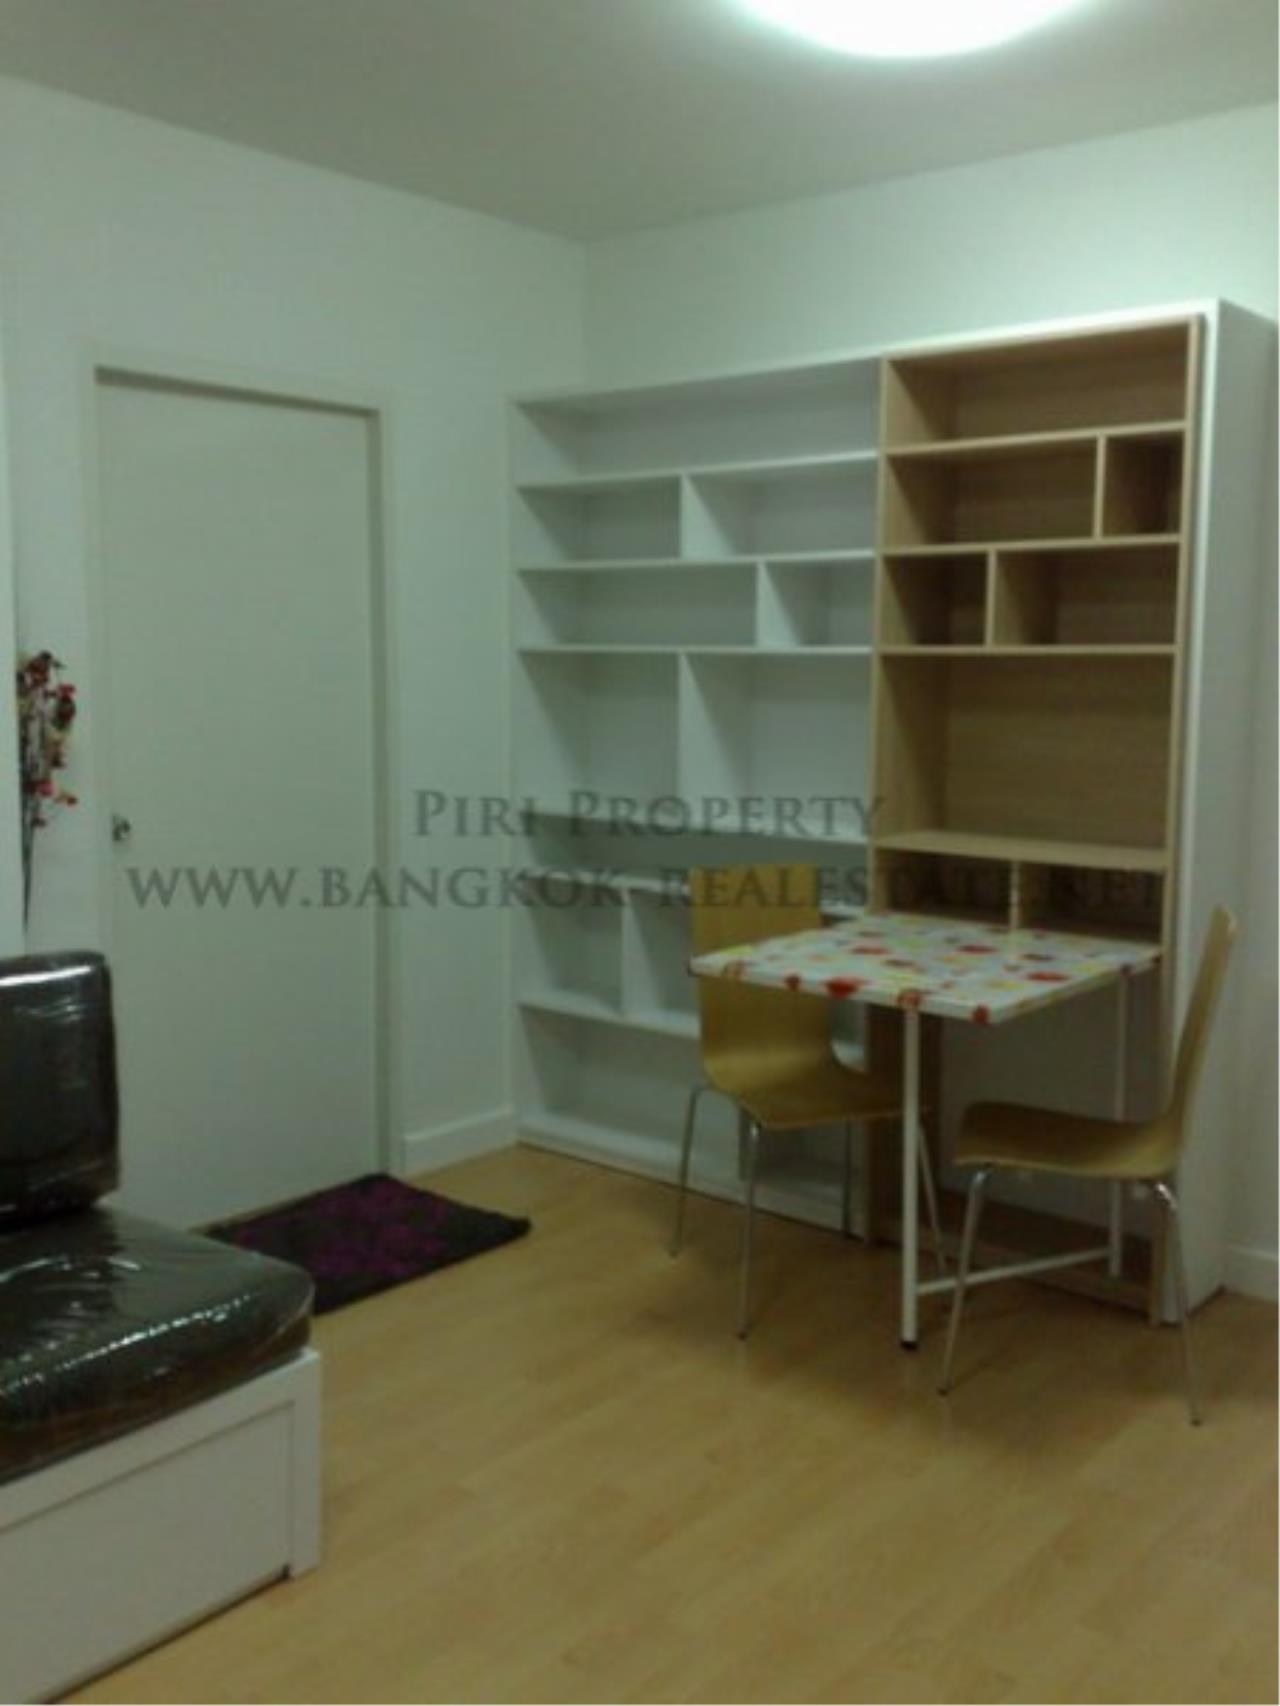 Piri Property Agency's My Condo 52 - One Bedroom for Rent 1